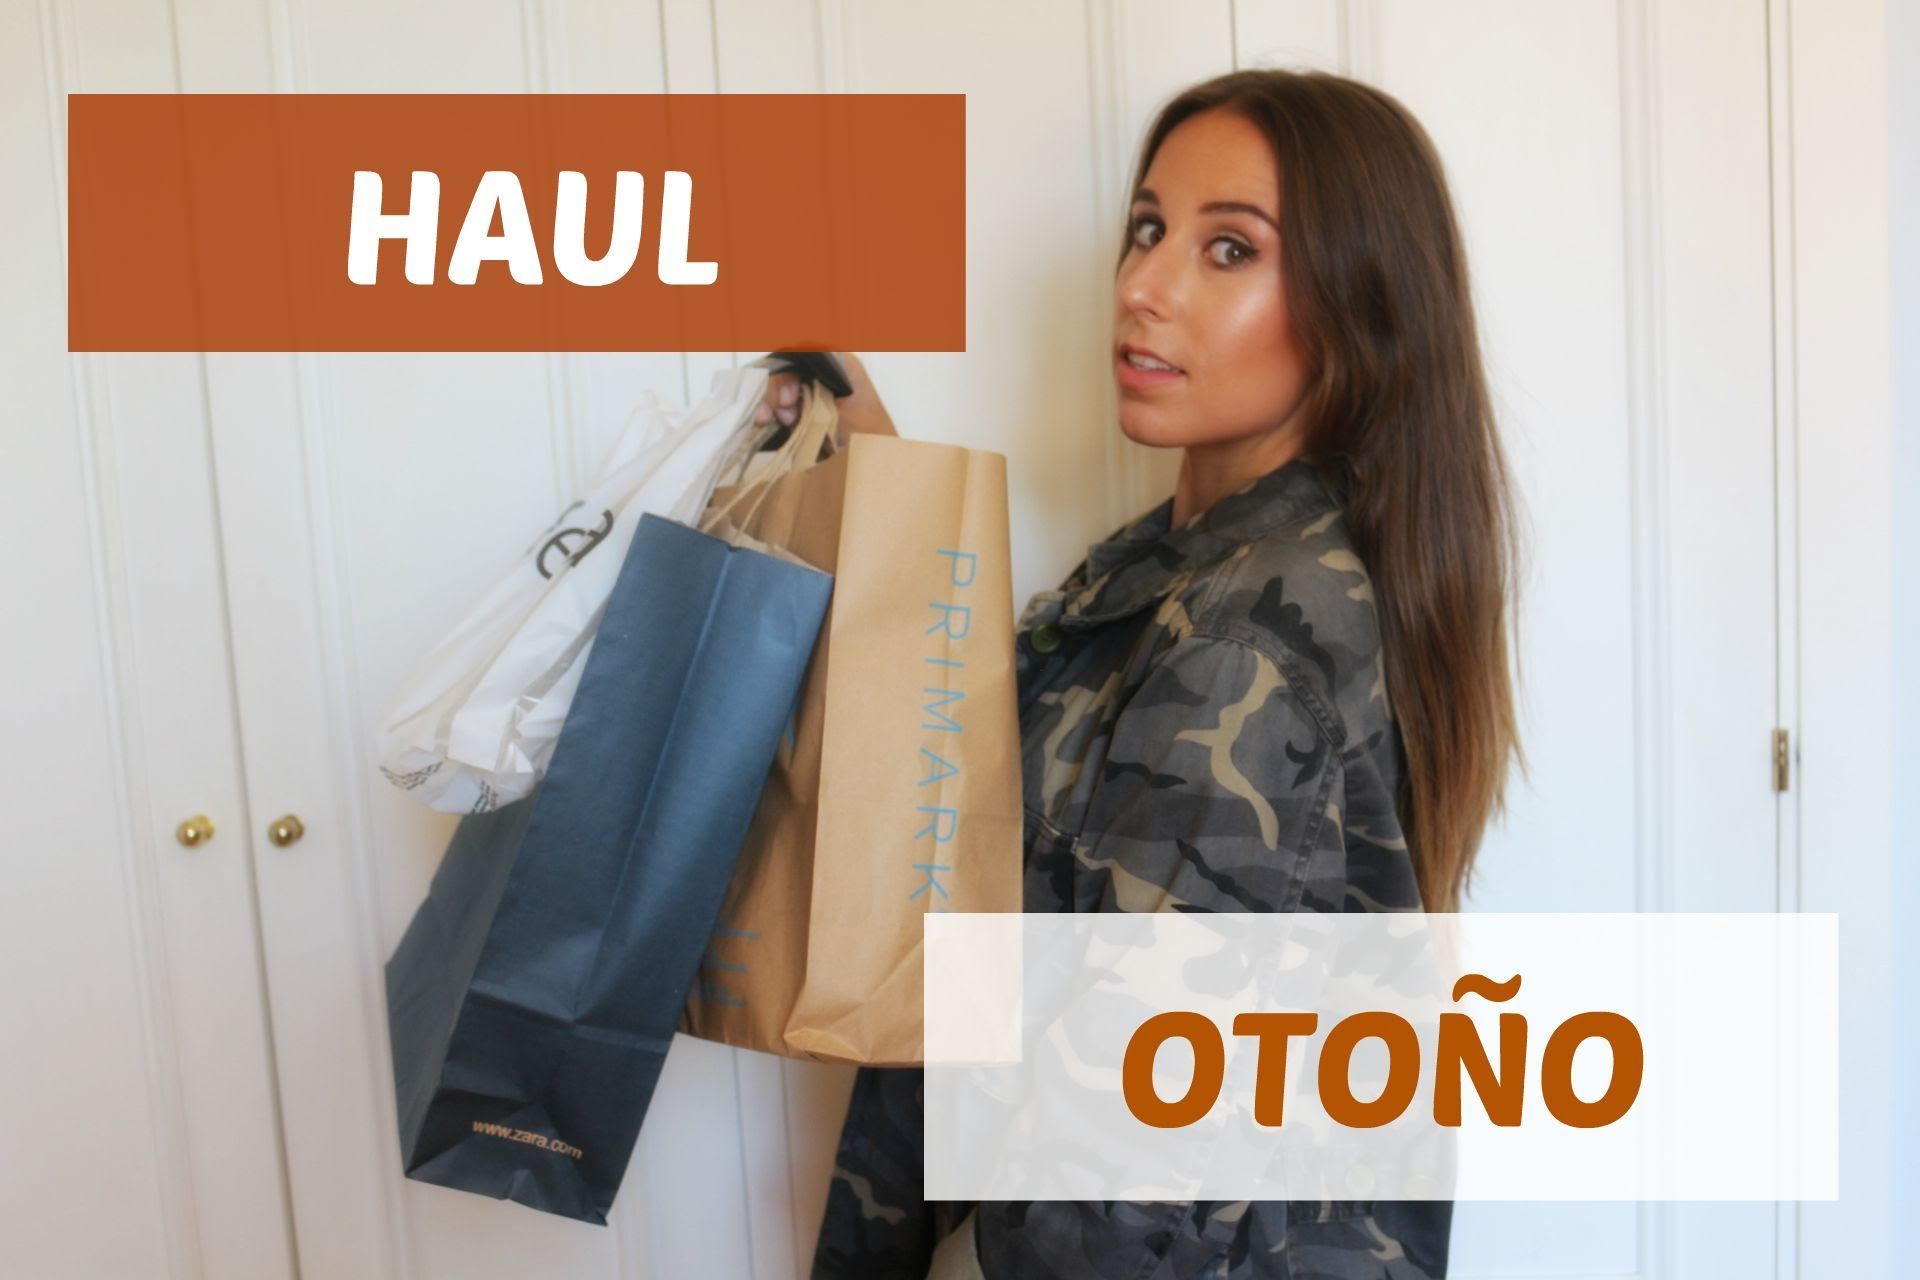 HAUL OTOÑO! Zara, Asos, Primark, Rimmel London...Youtube. Trendencies TV